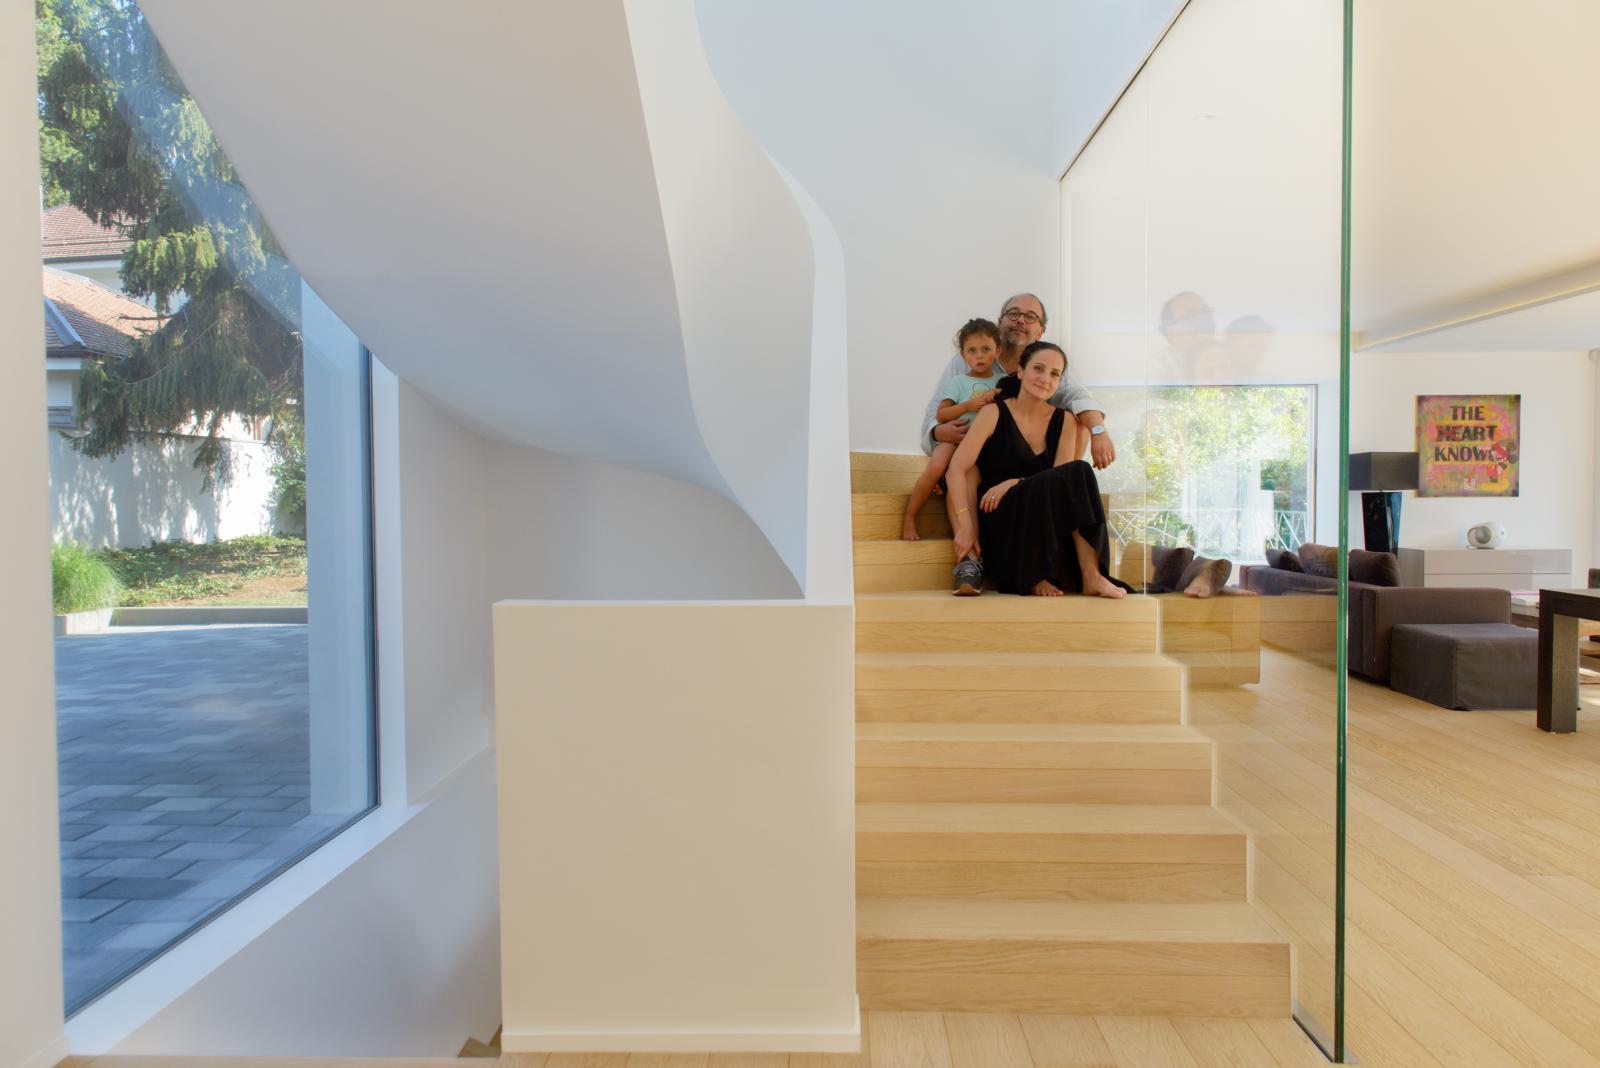 A family poses for a portrait in their home, designed by the architect Tiffany Beriro. Geneva, Switwerland - July 19, 2018.